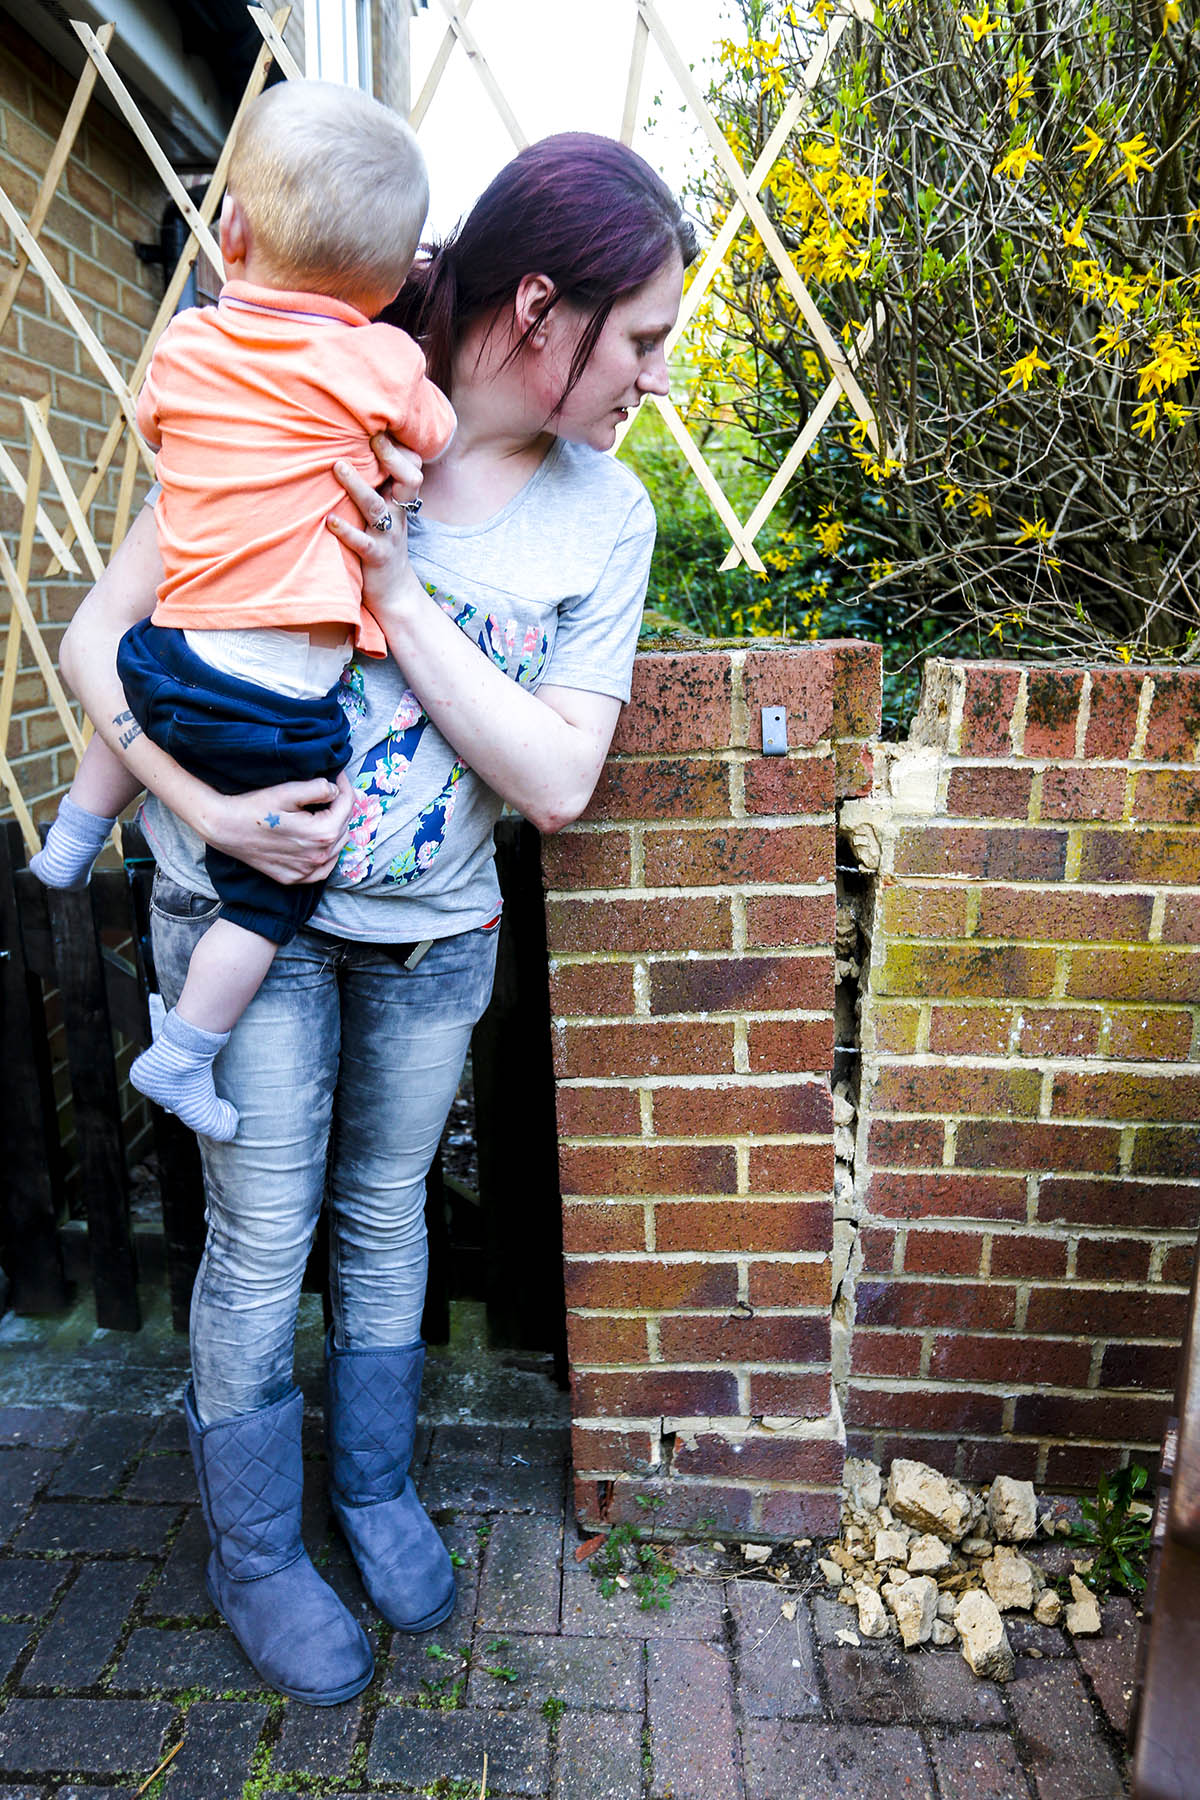 Mother fears crumbling wall in garden could 'kill' her toddler